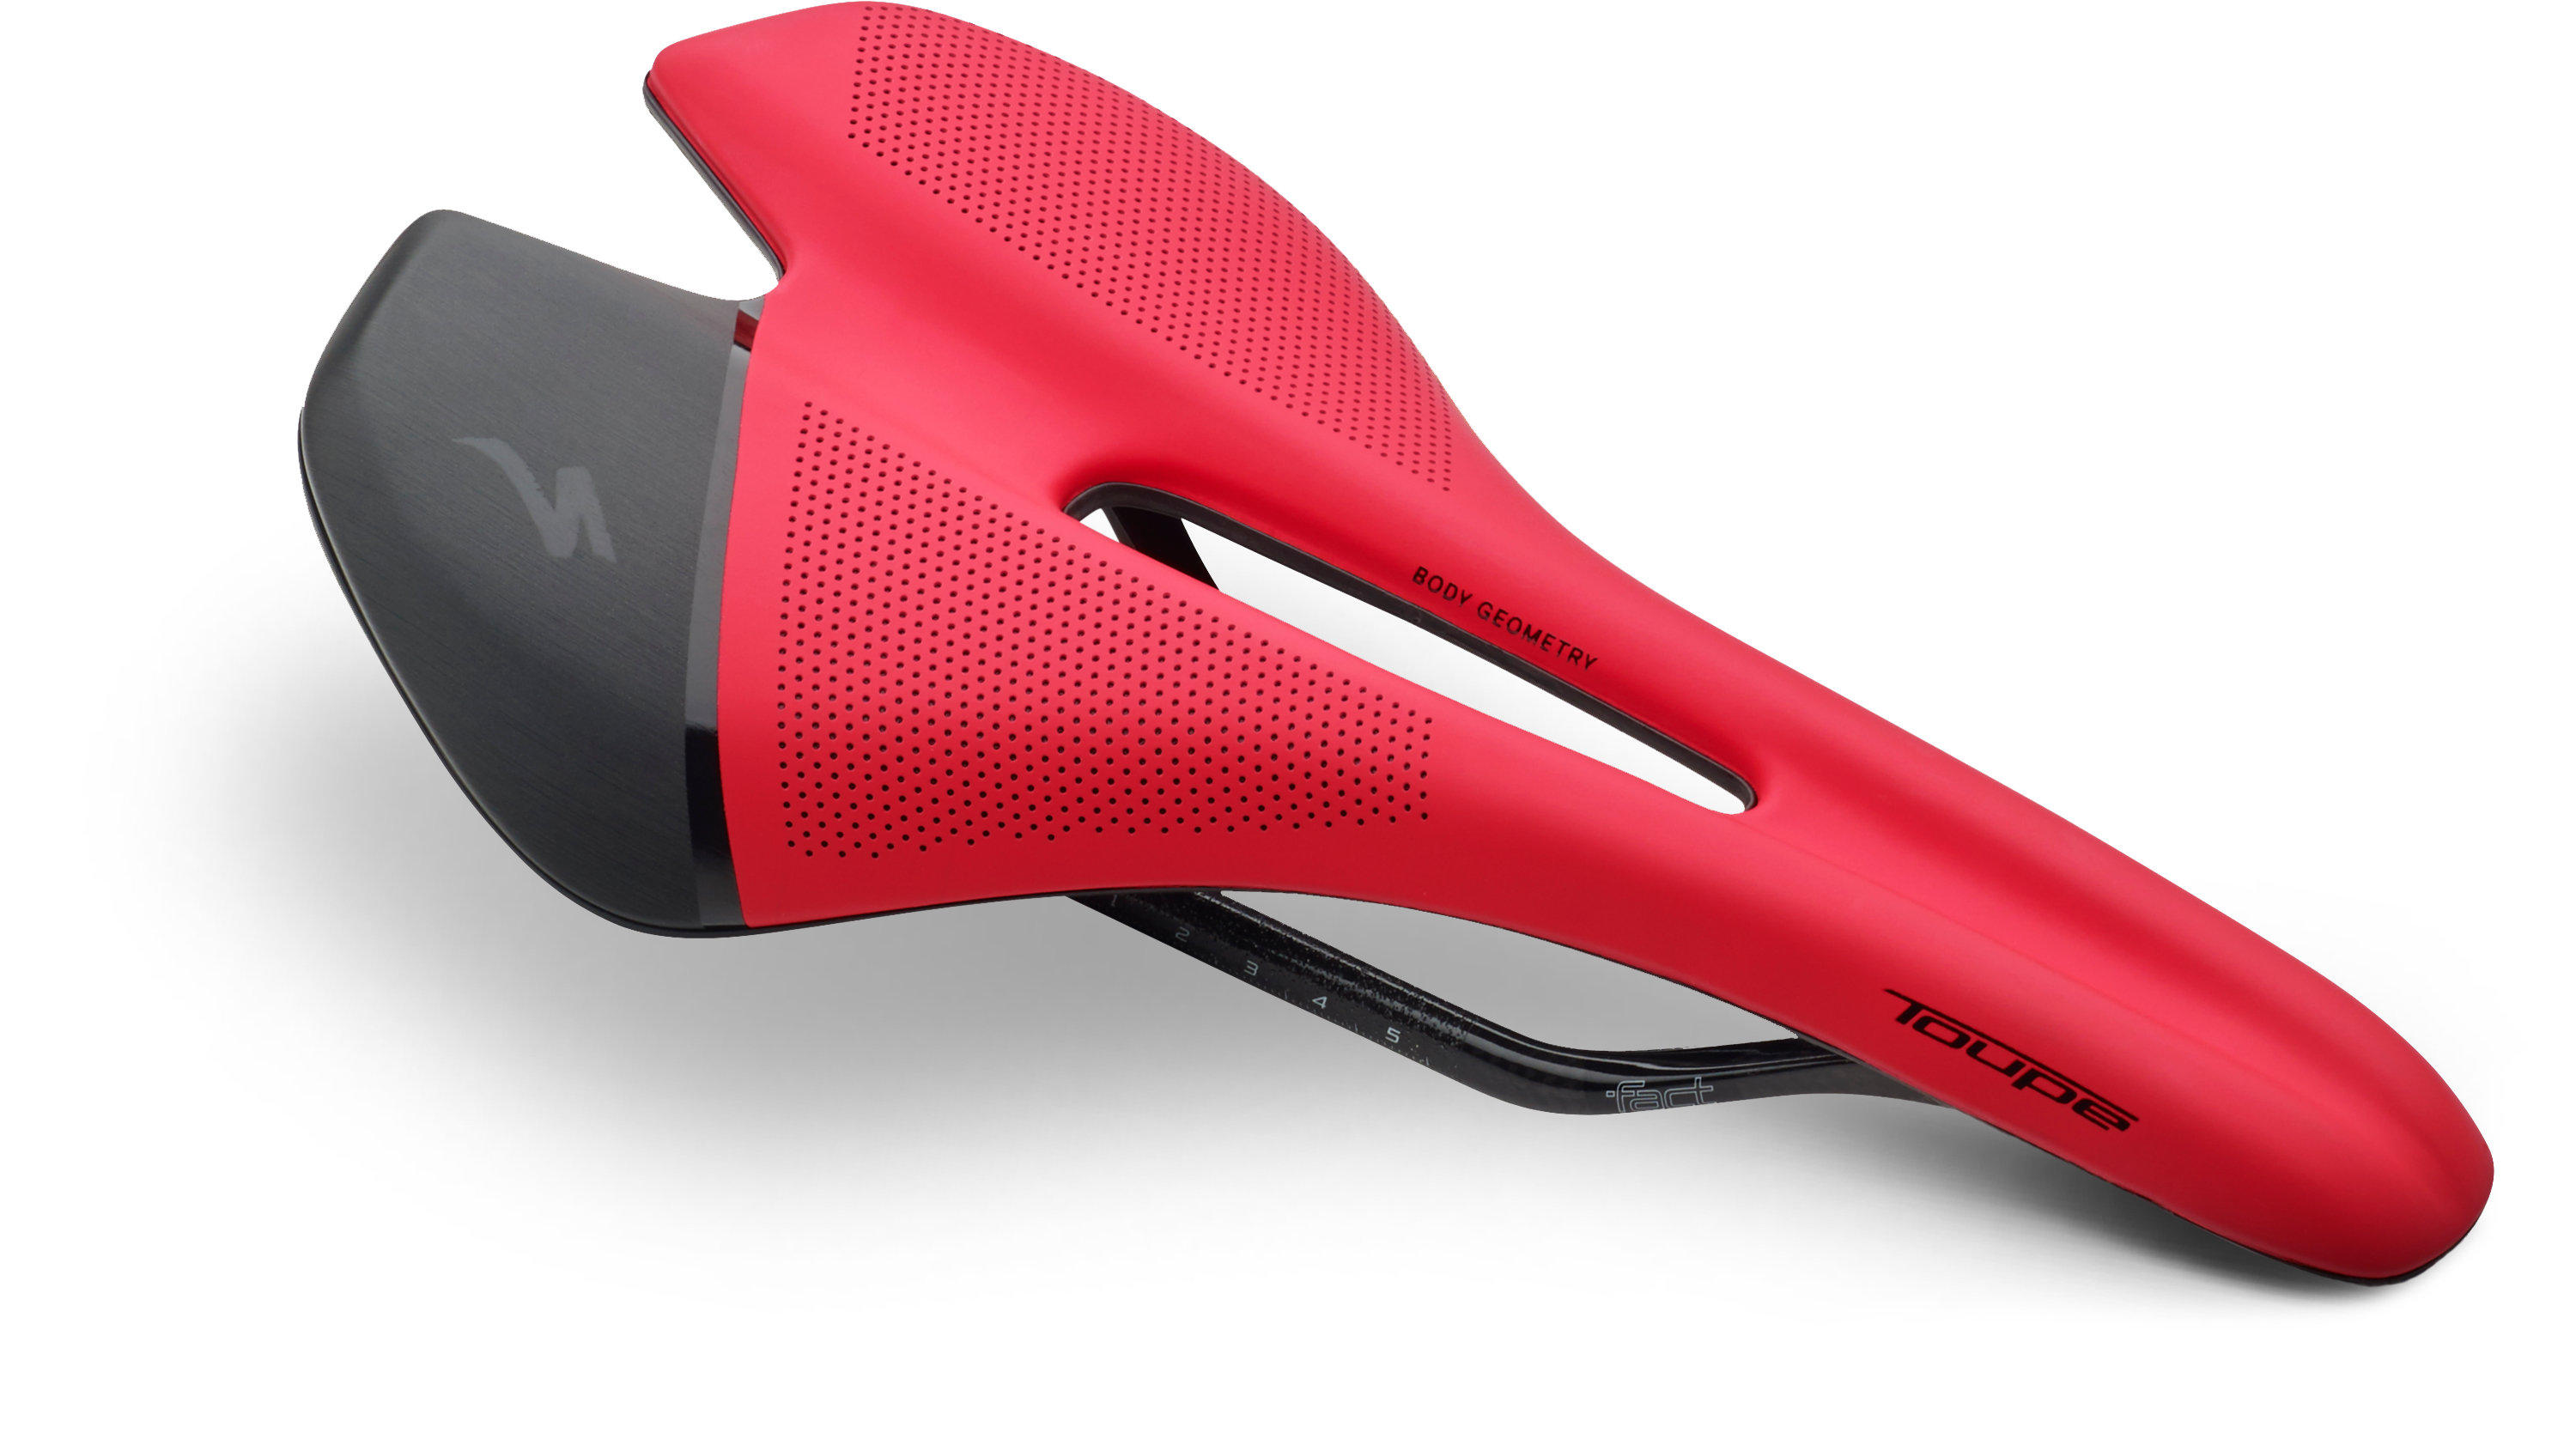 SPECIALIZED TOUPE PRO SADDLE TEAM 130 - Alpha Bikes